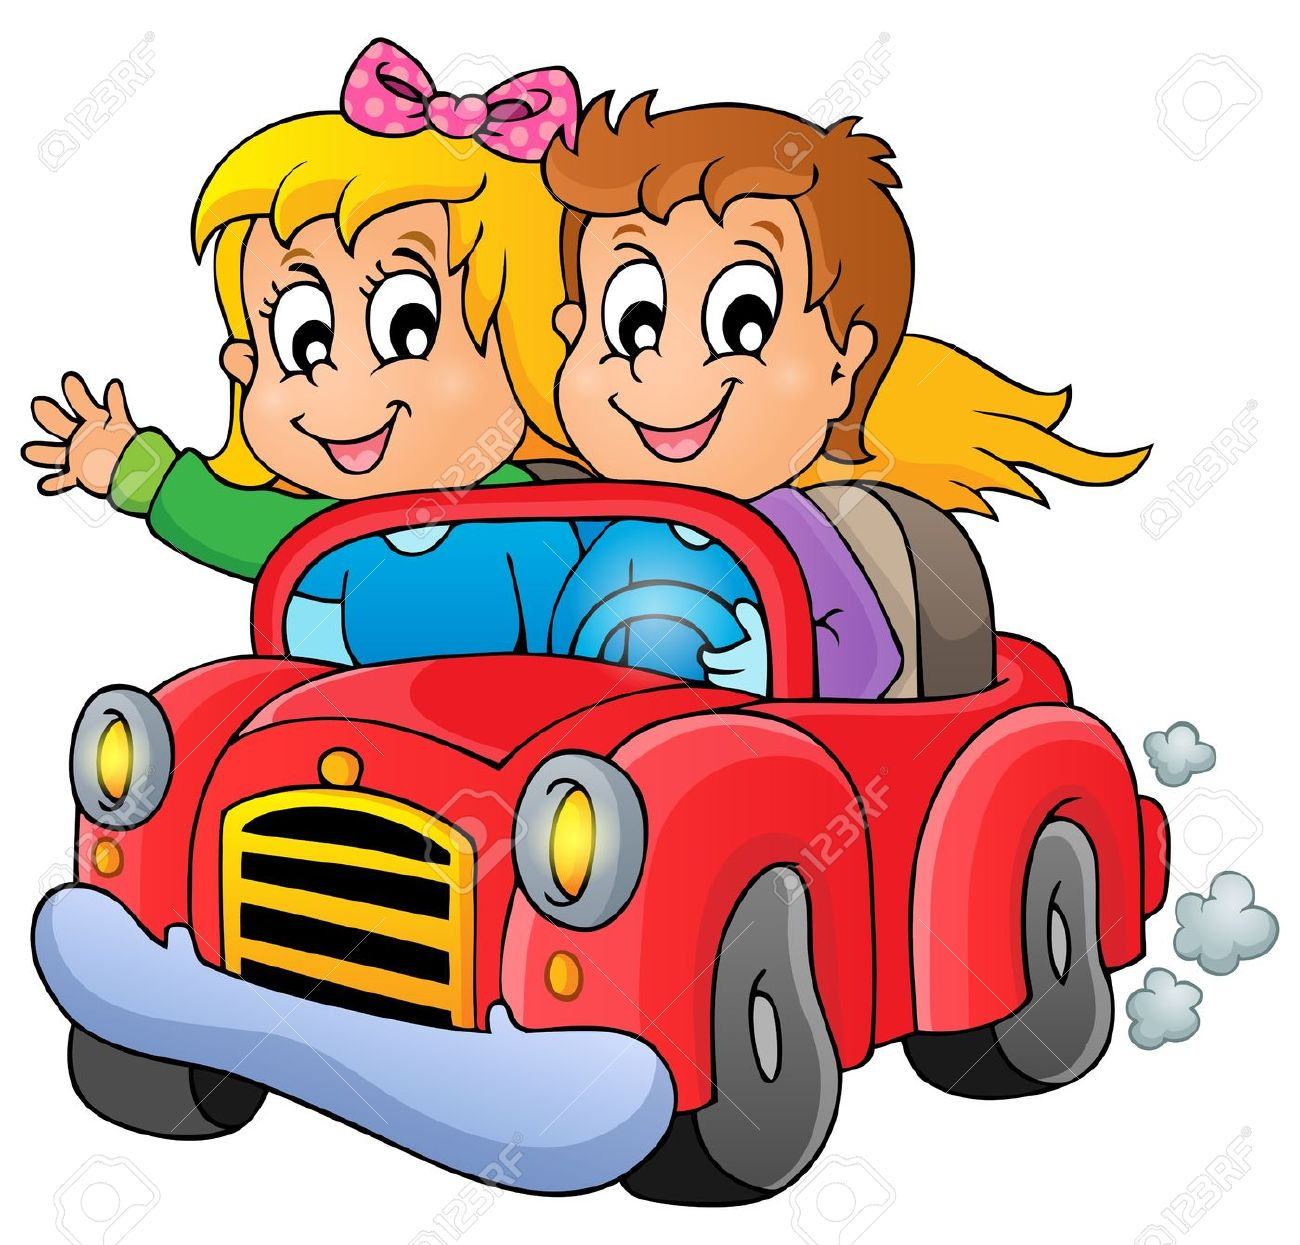 Free download best on. Driving clipart two person